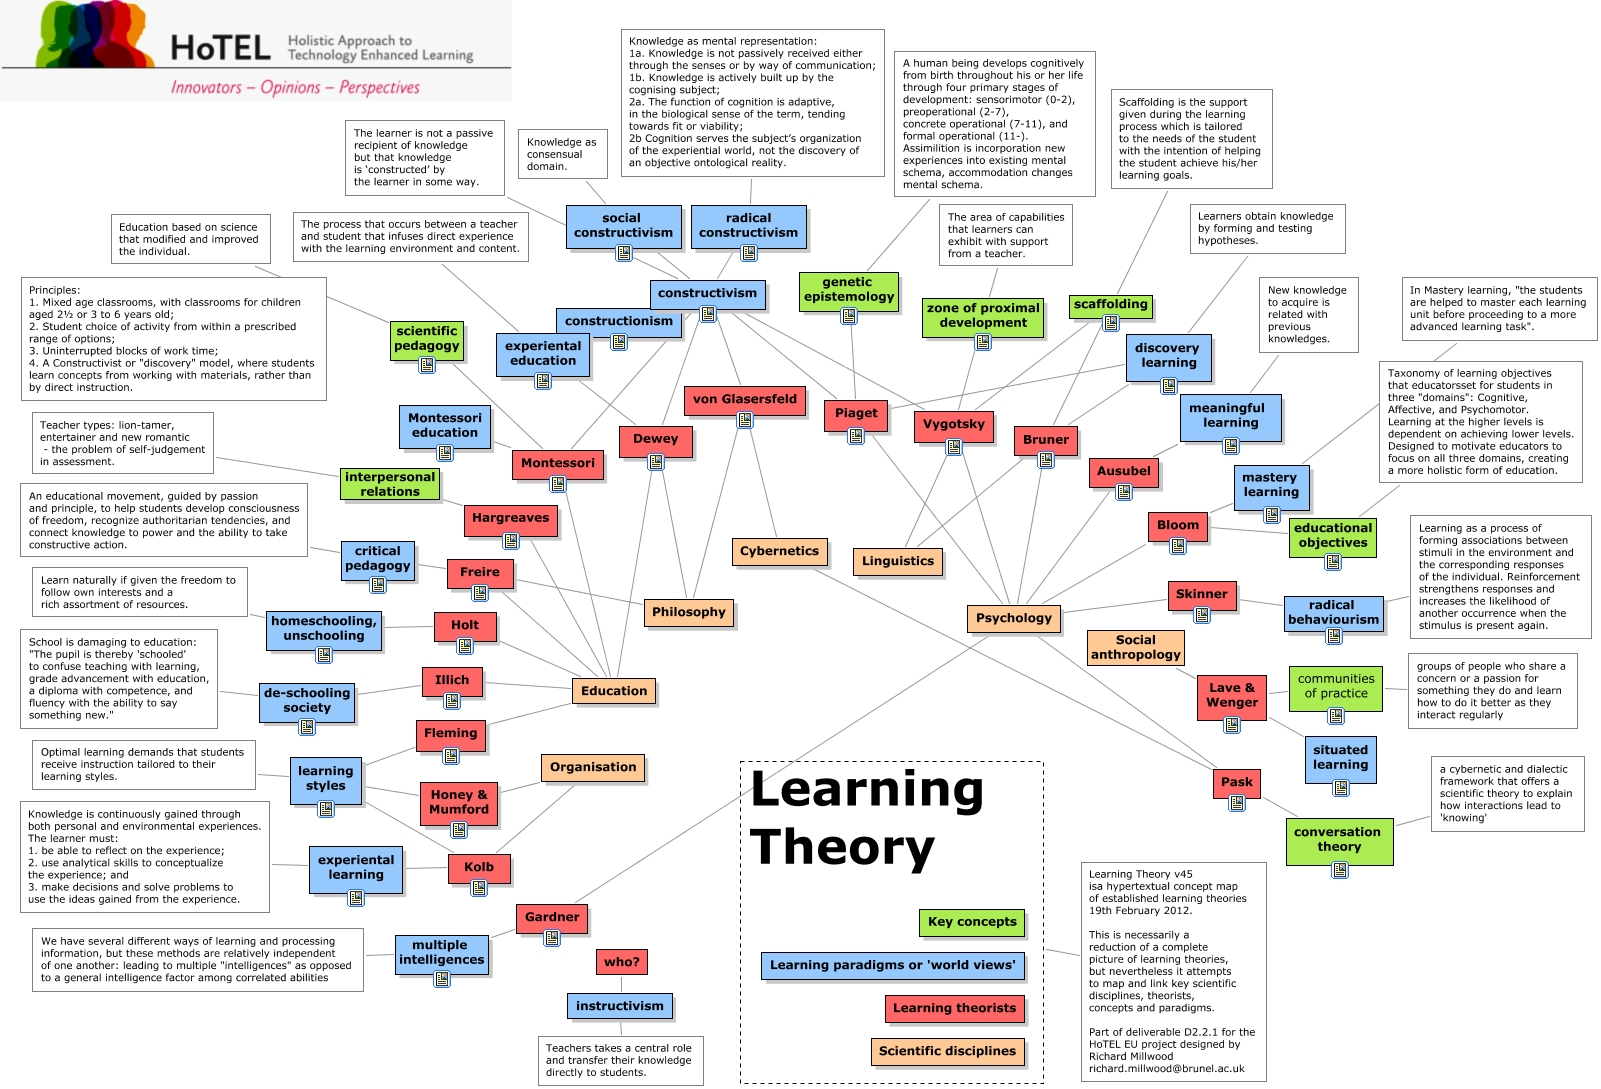 Learning Theory v5